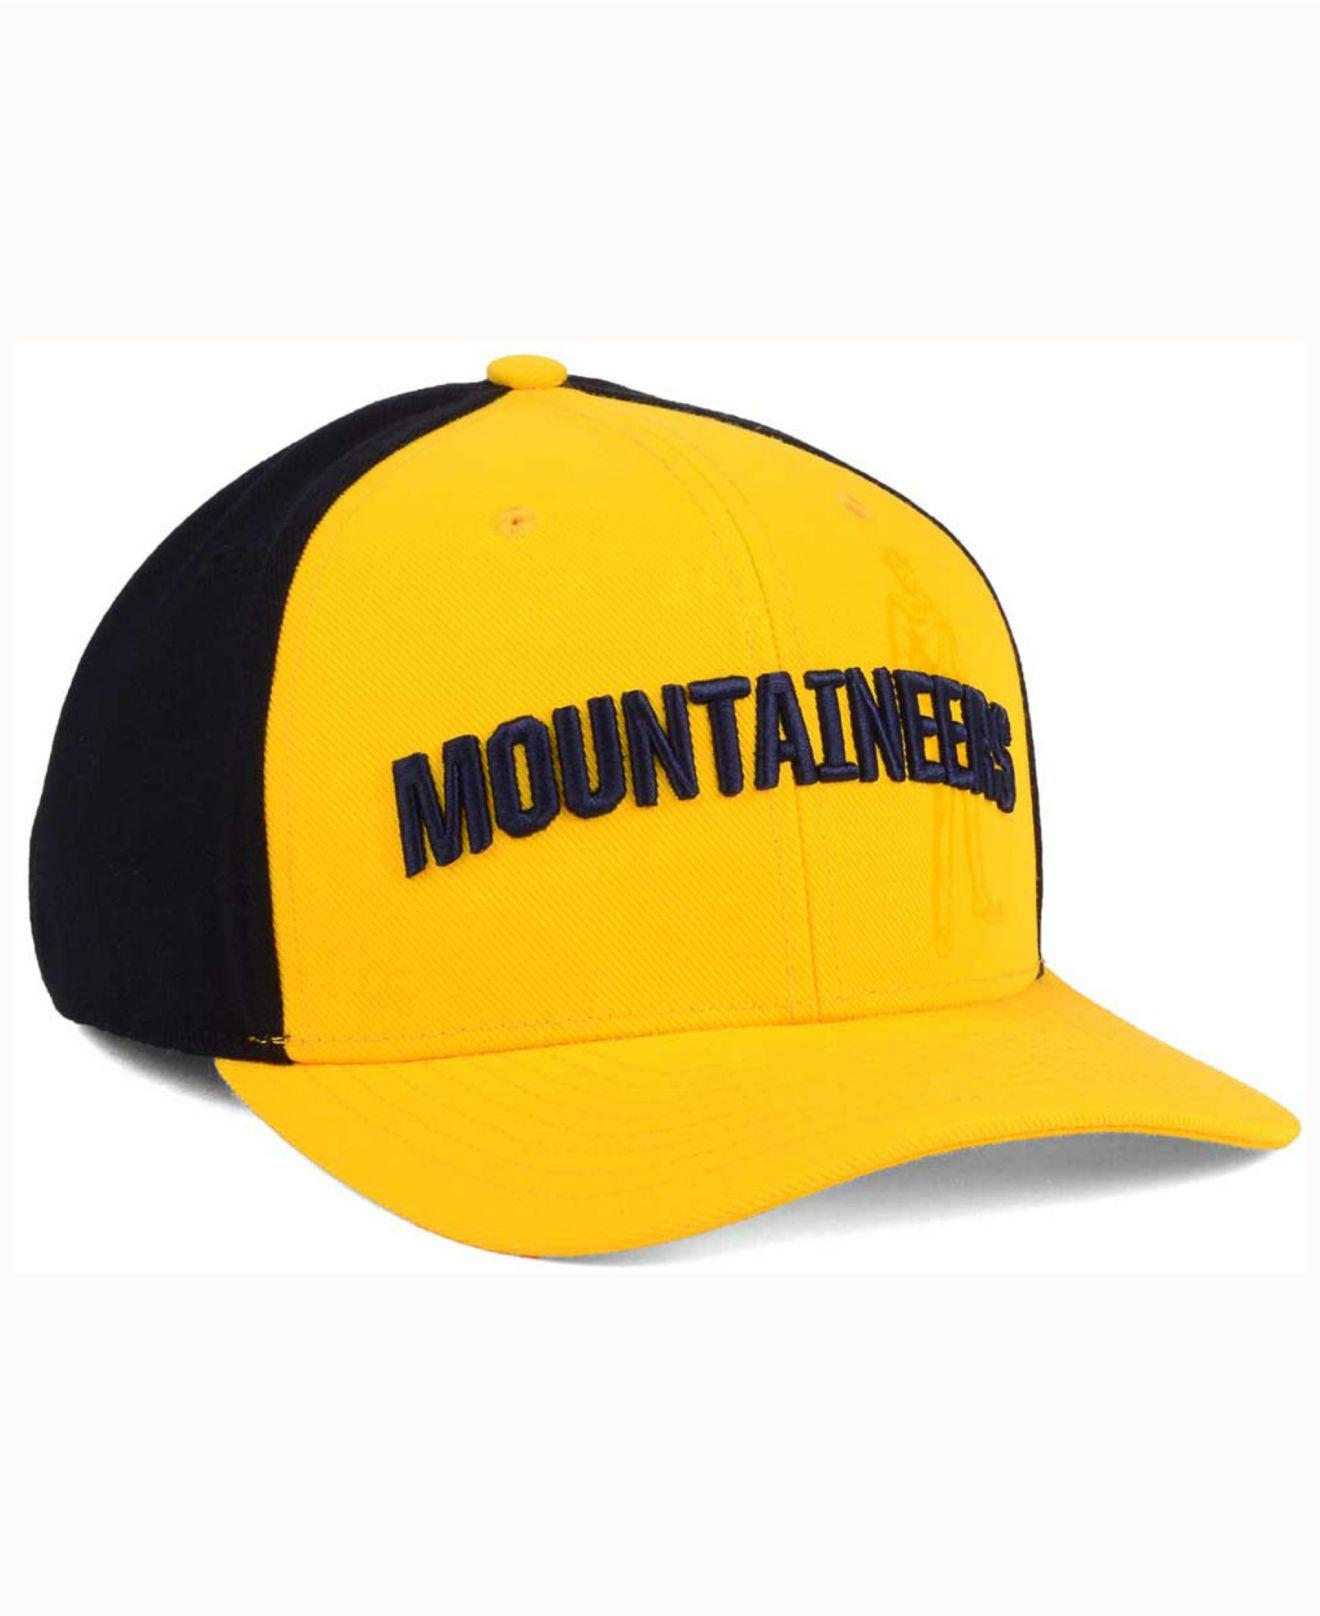 06b8e715ee0 ... coupon code for nike yellow west virginia mountaineers classic 99  swoosh flex cap for men lyst